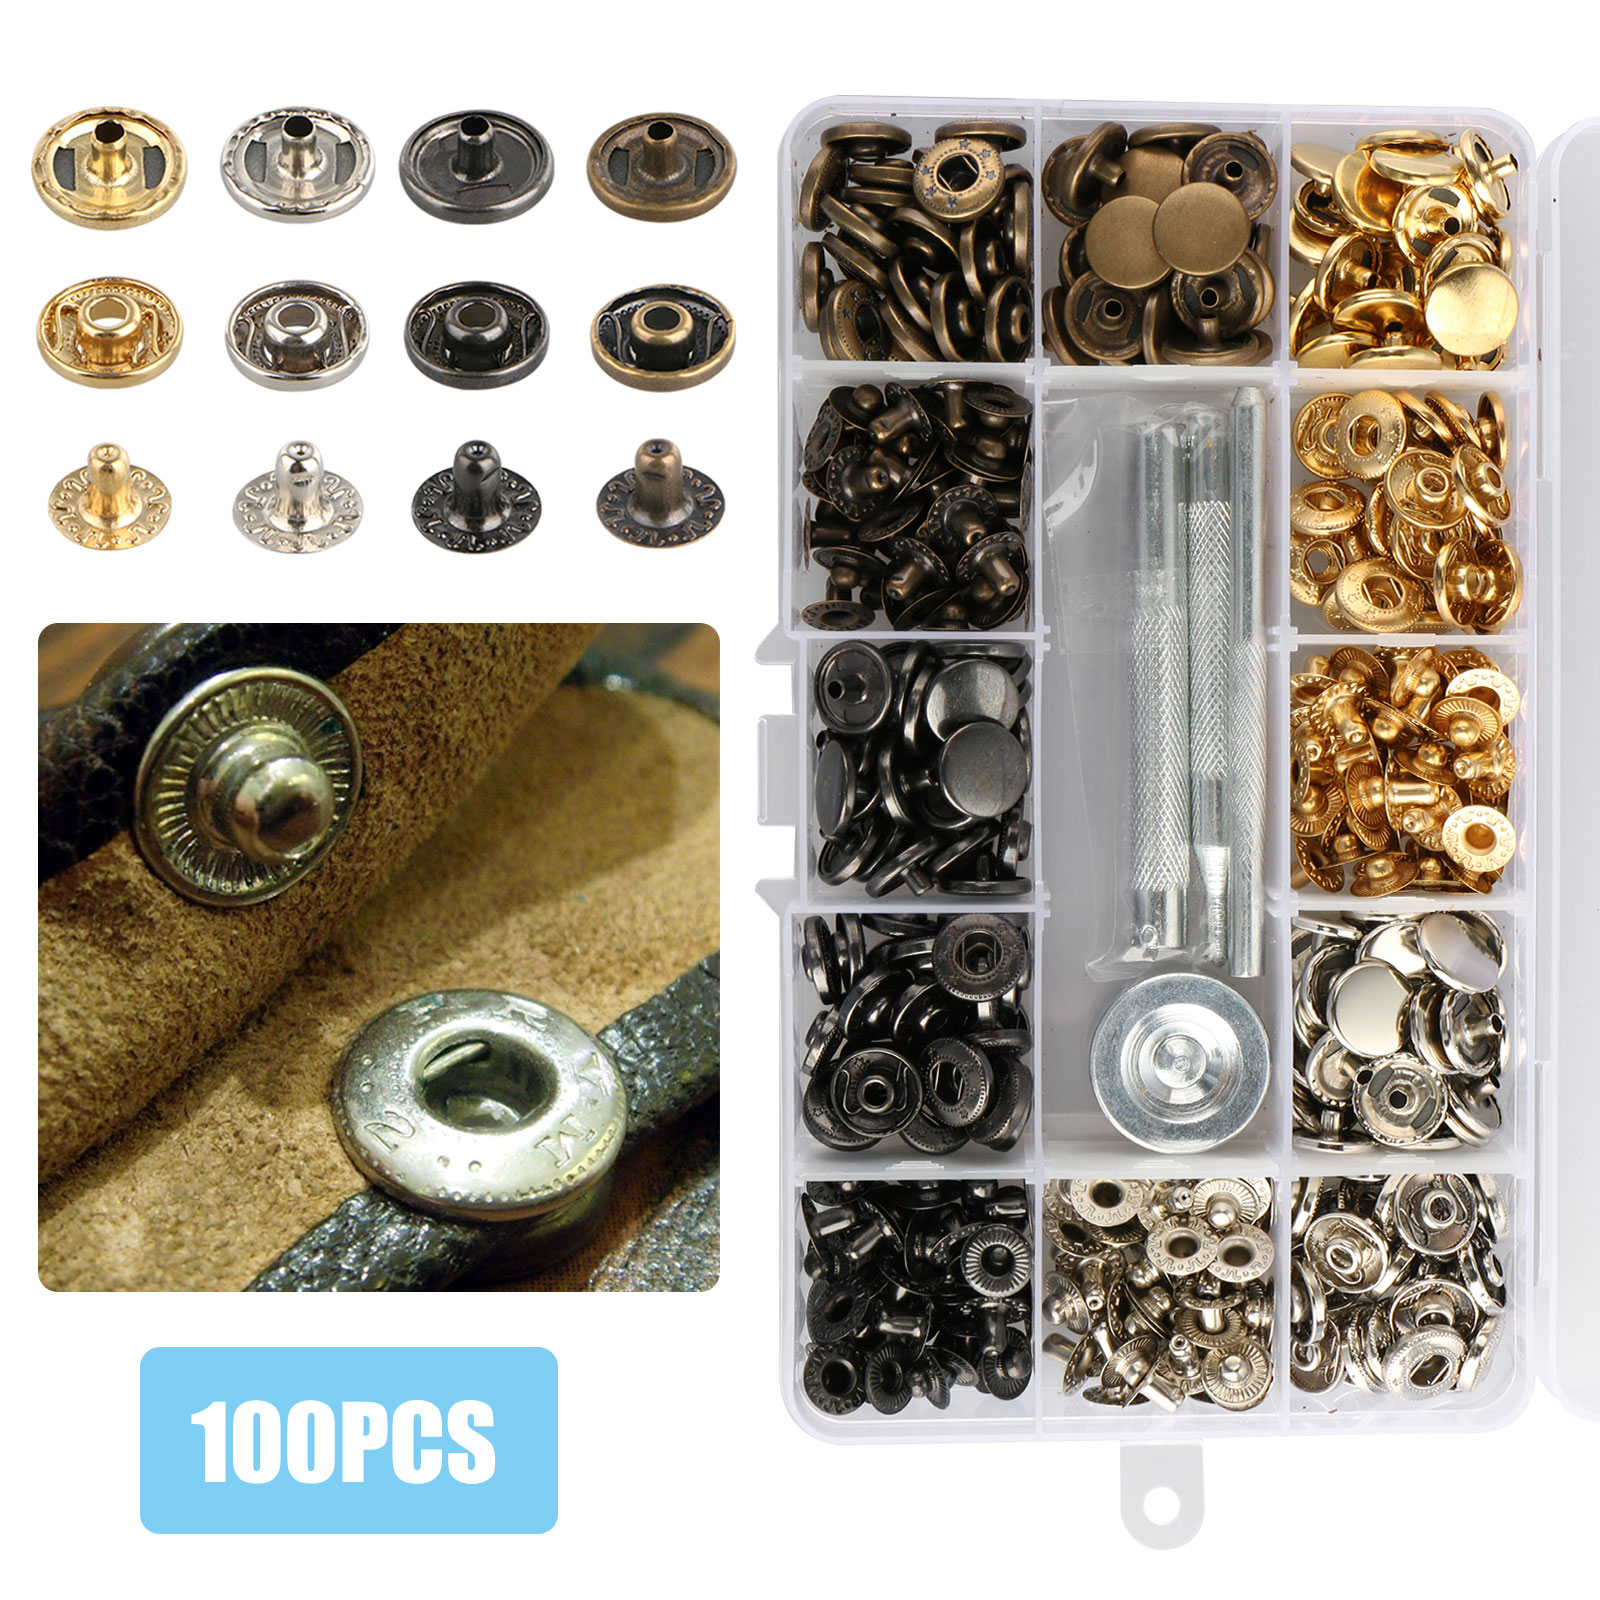 100 Set Metal Buttons Snap Fastener Press Stud Popper Buttons Sew On Clothes